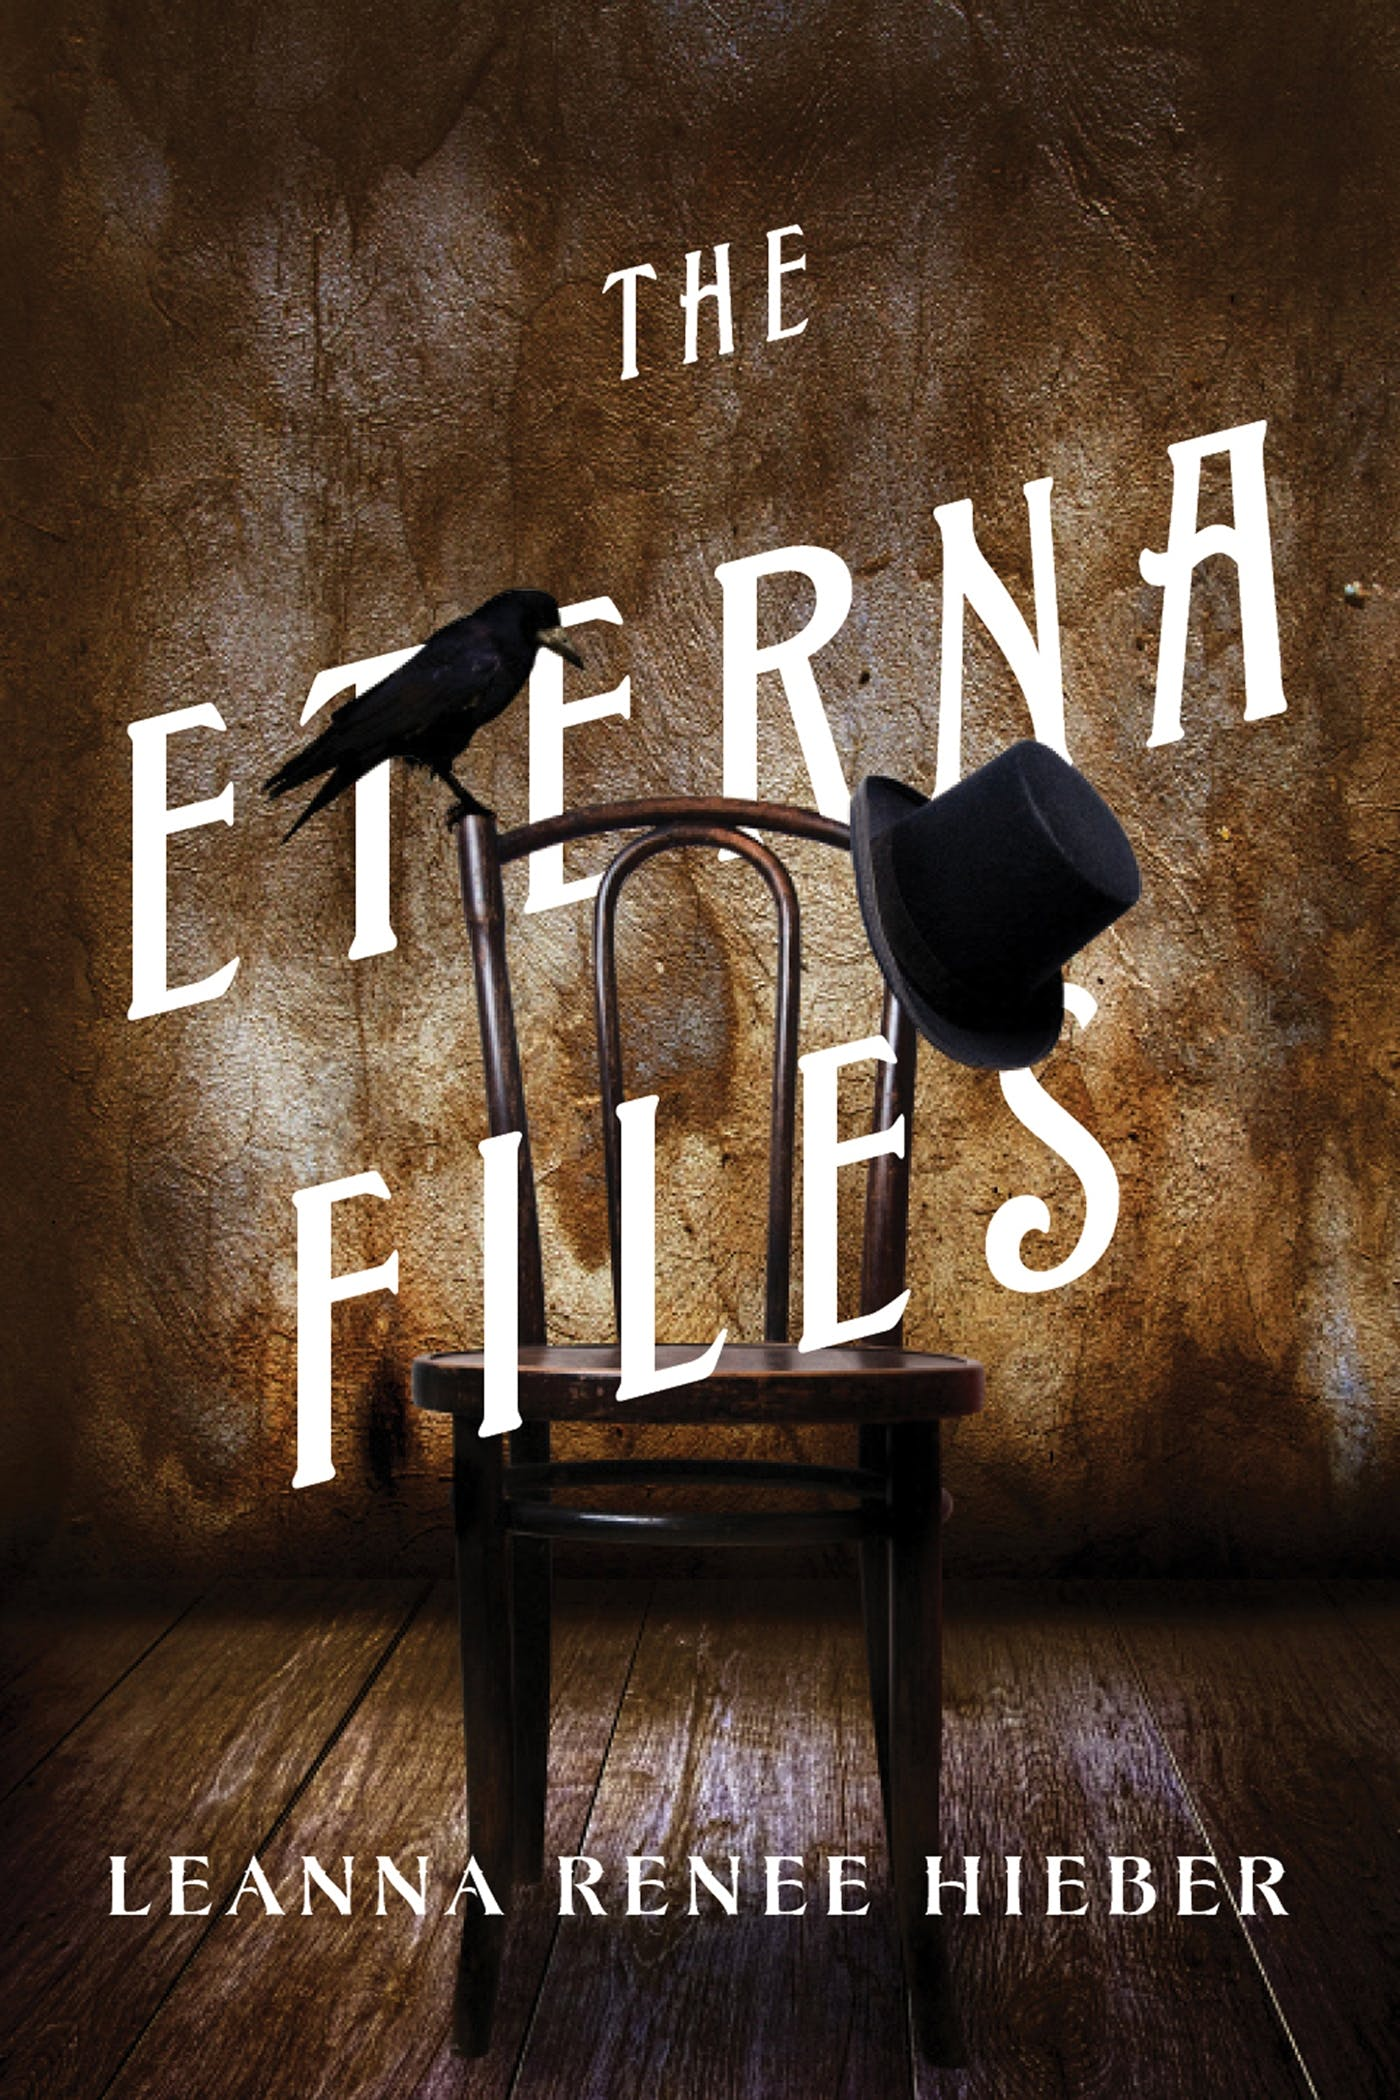 Image of The Eterna Files